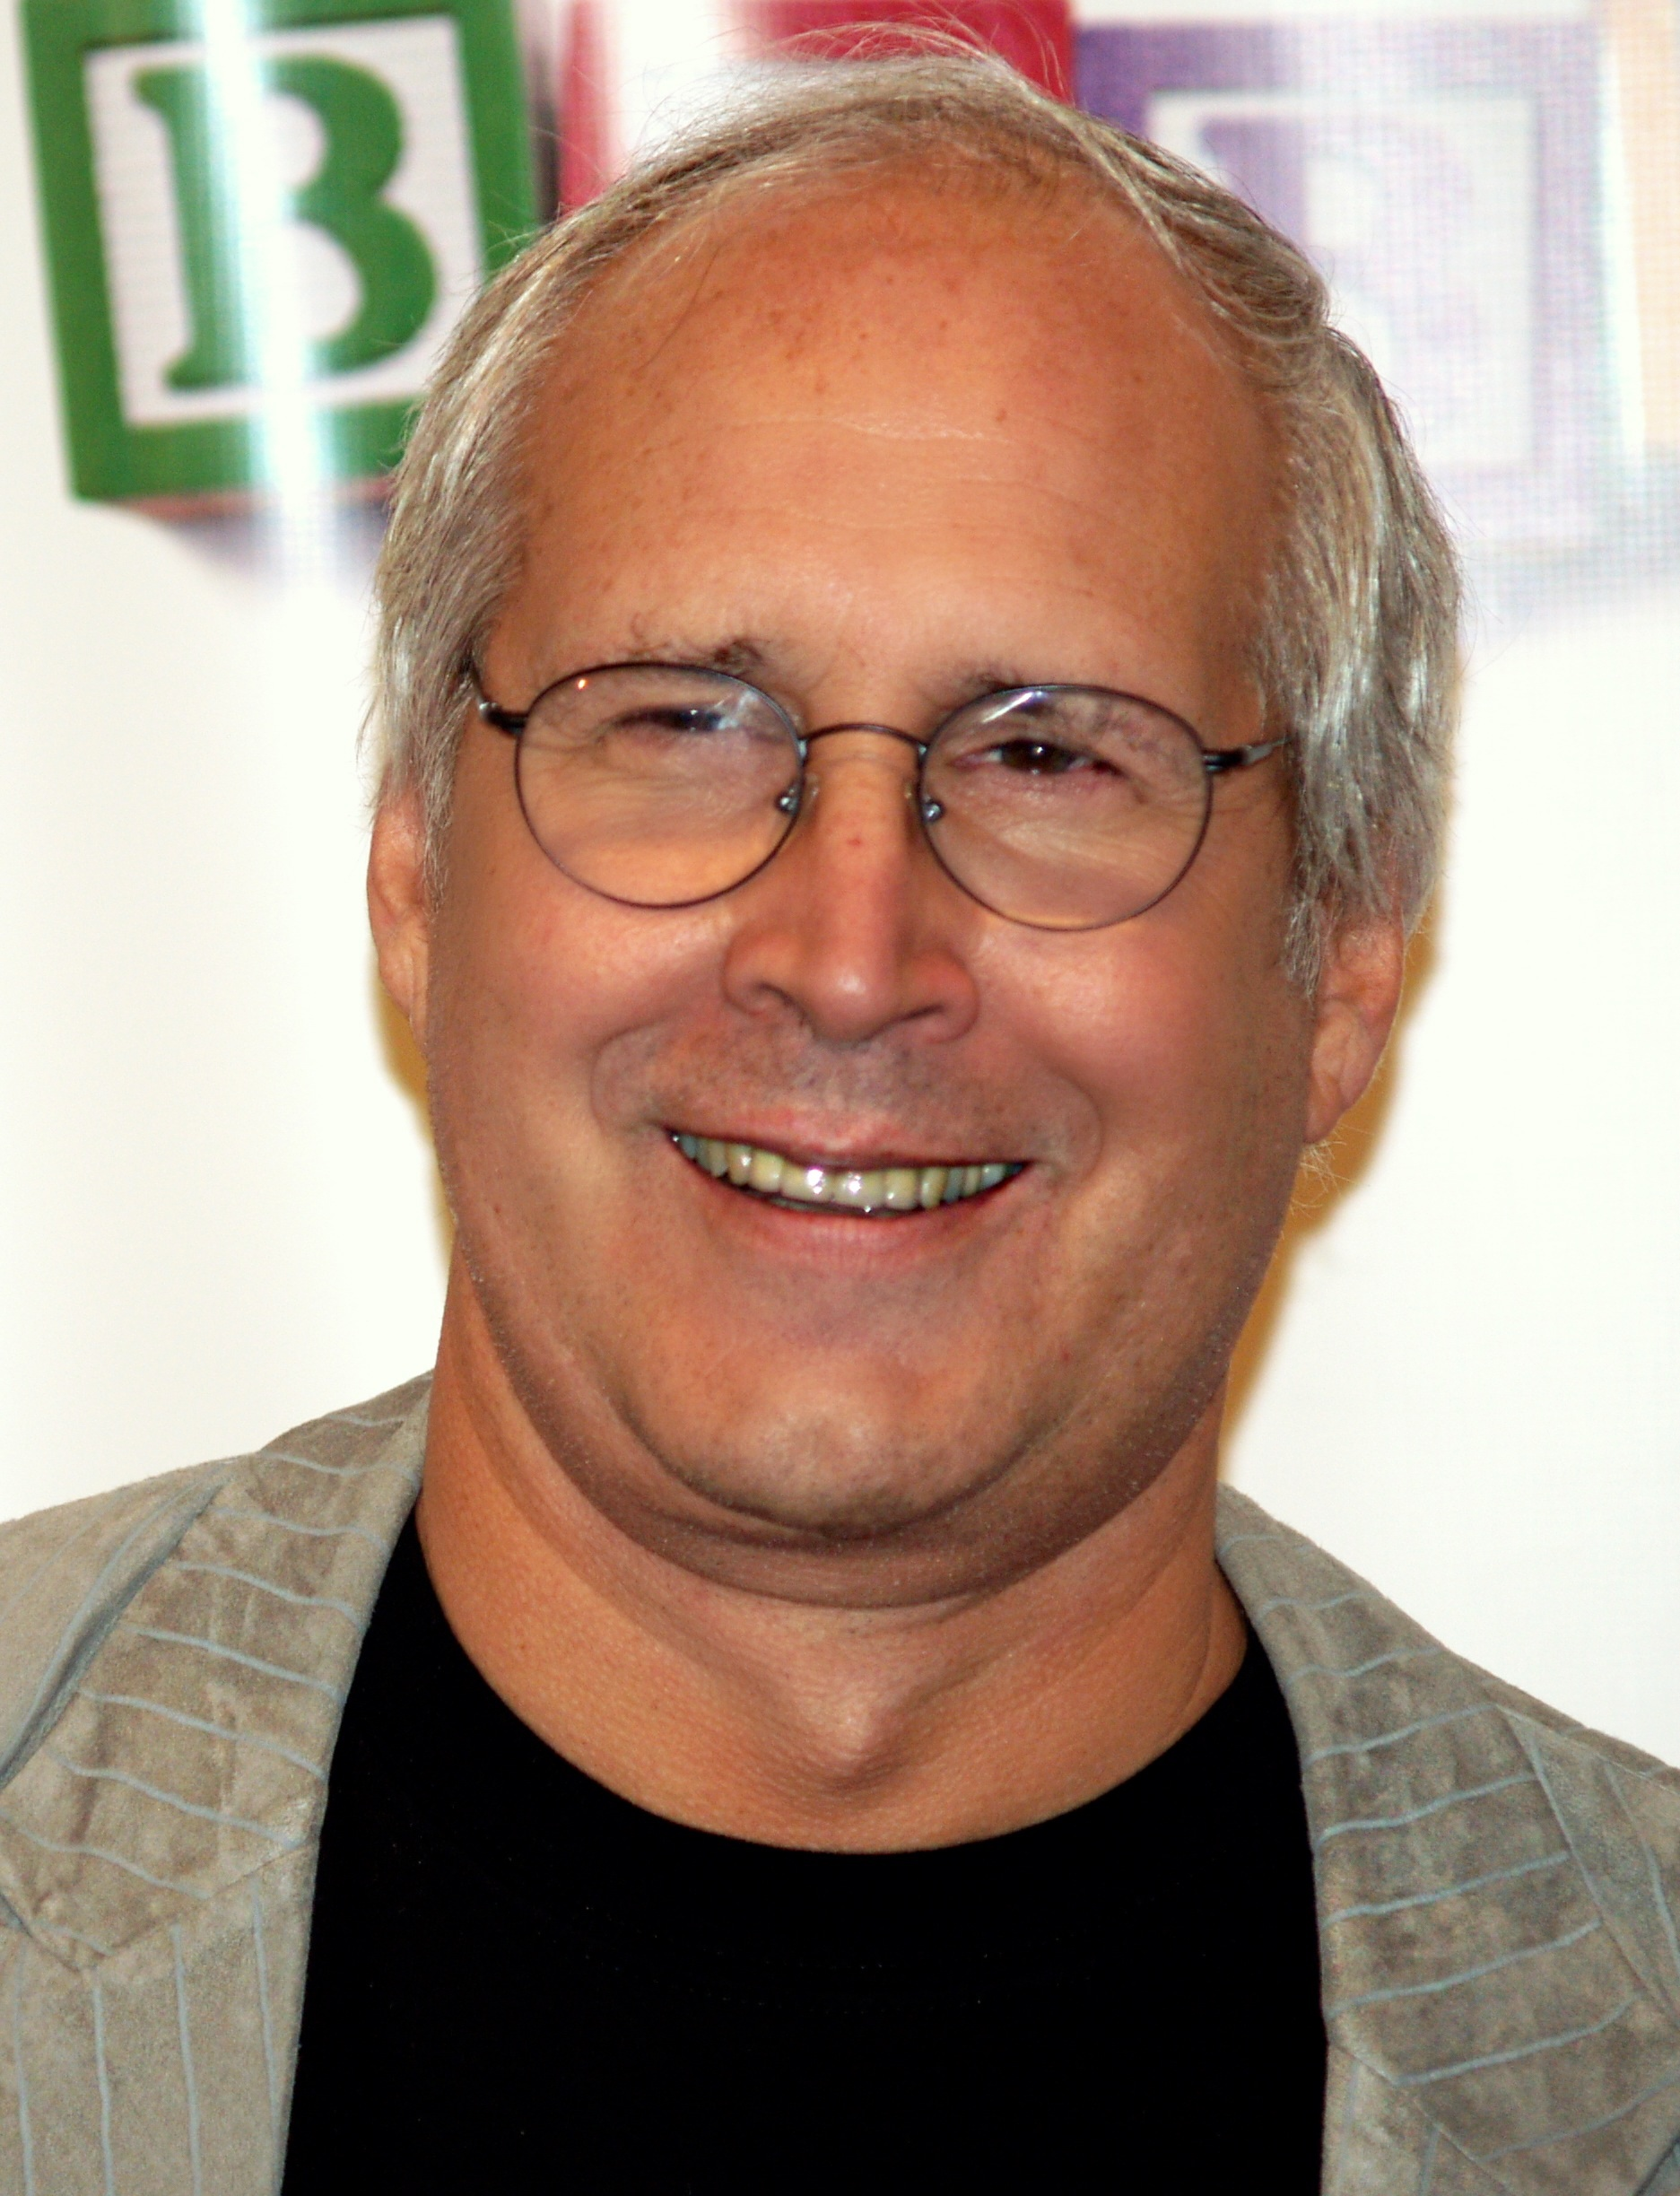 Description Chevy Chase At The 2008 Tribeca Film Festival JPG